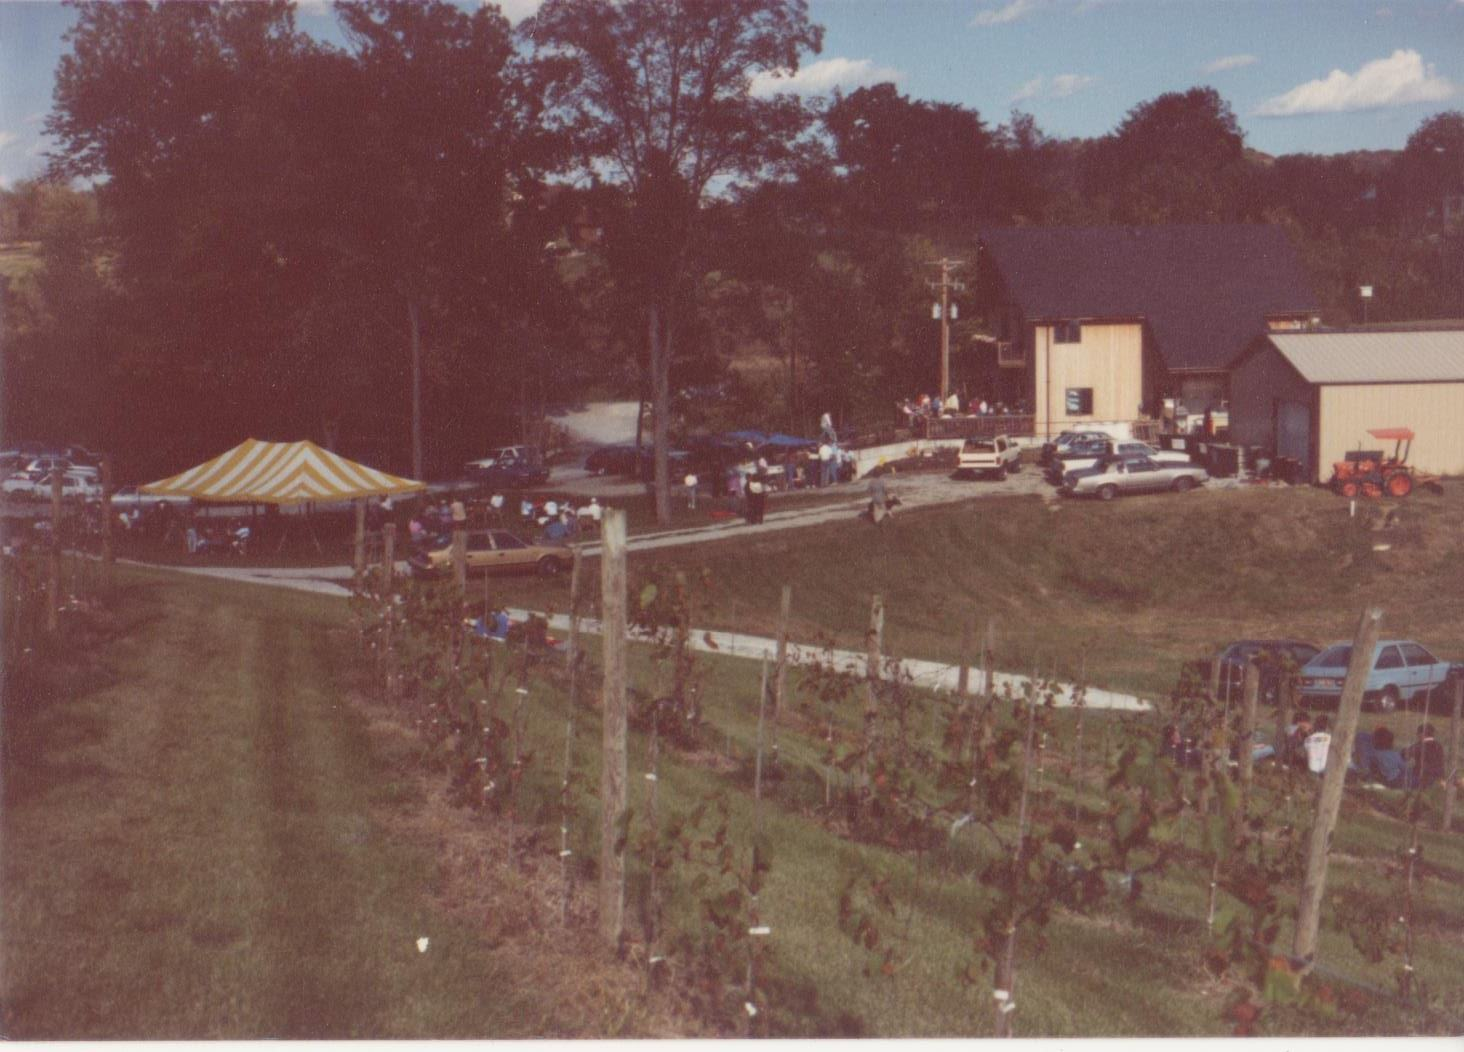 October 1989 Blumenhof Winery